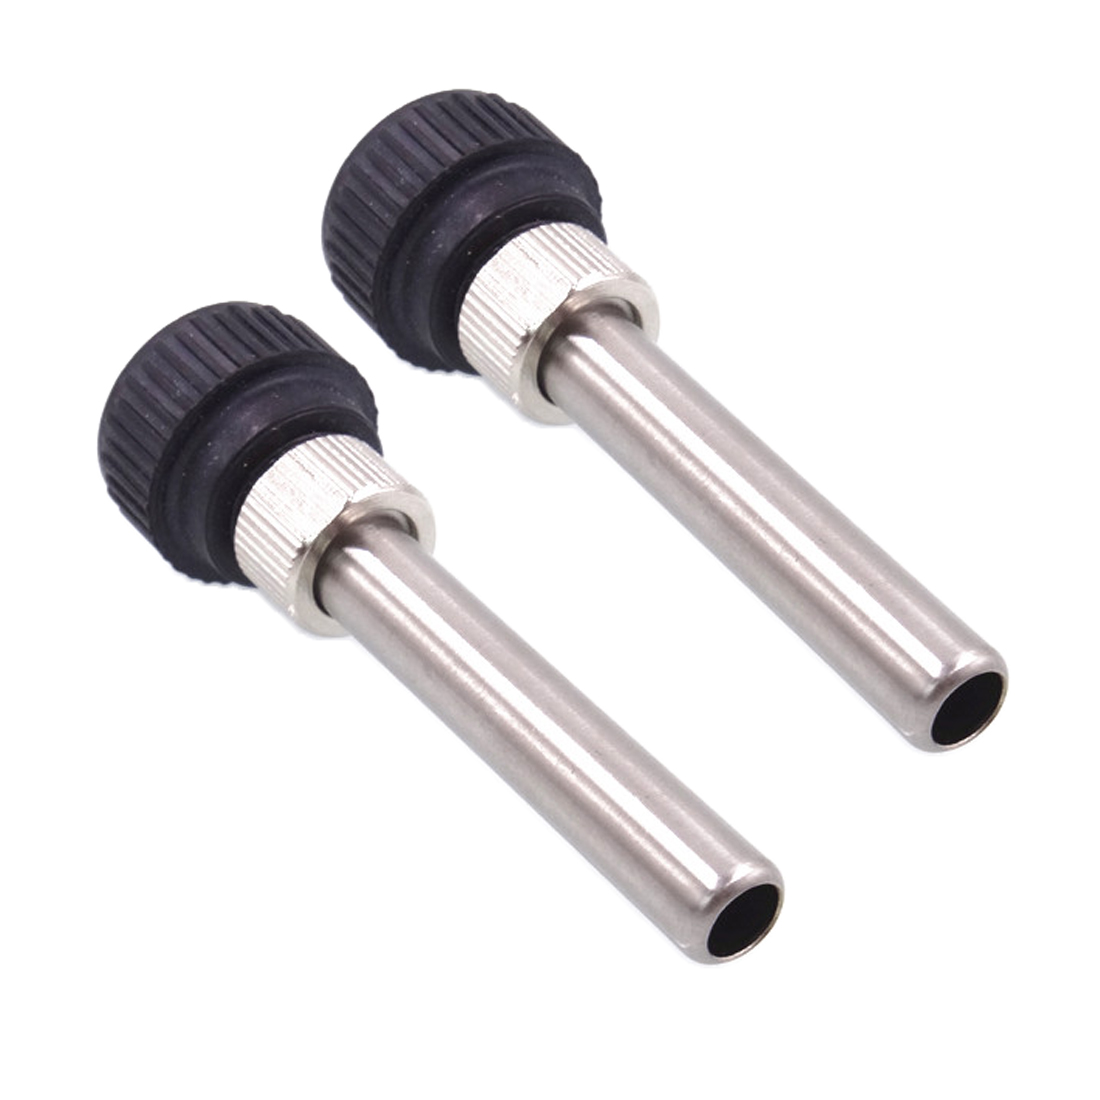 2PCS Soldering Station Iron Handle Accessories for 852D 936 937D 898D 907//ESD /_T